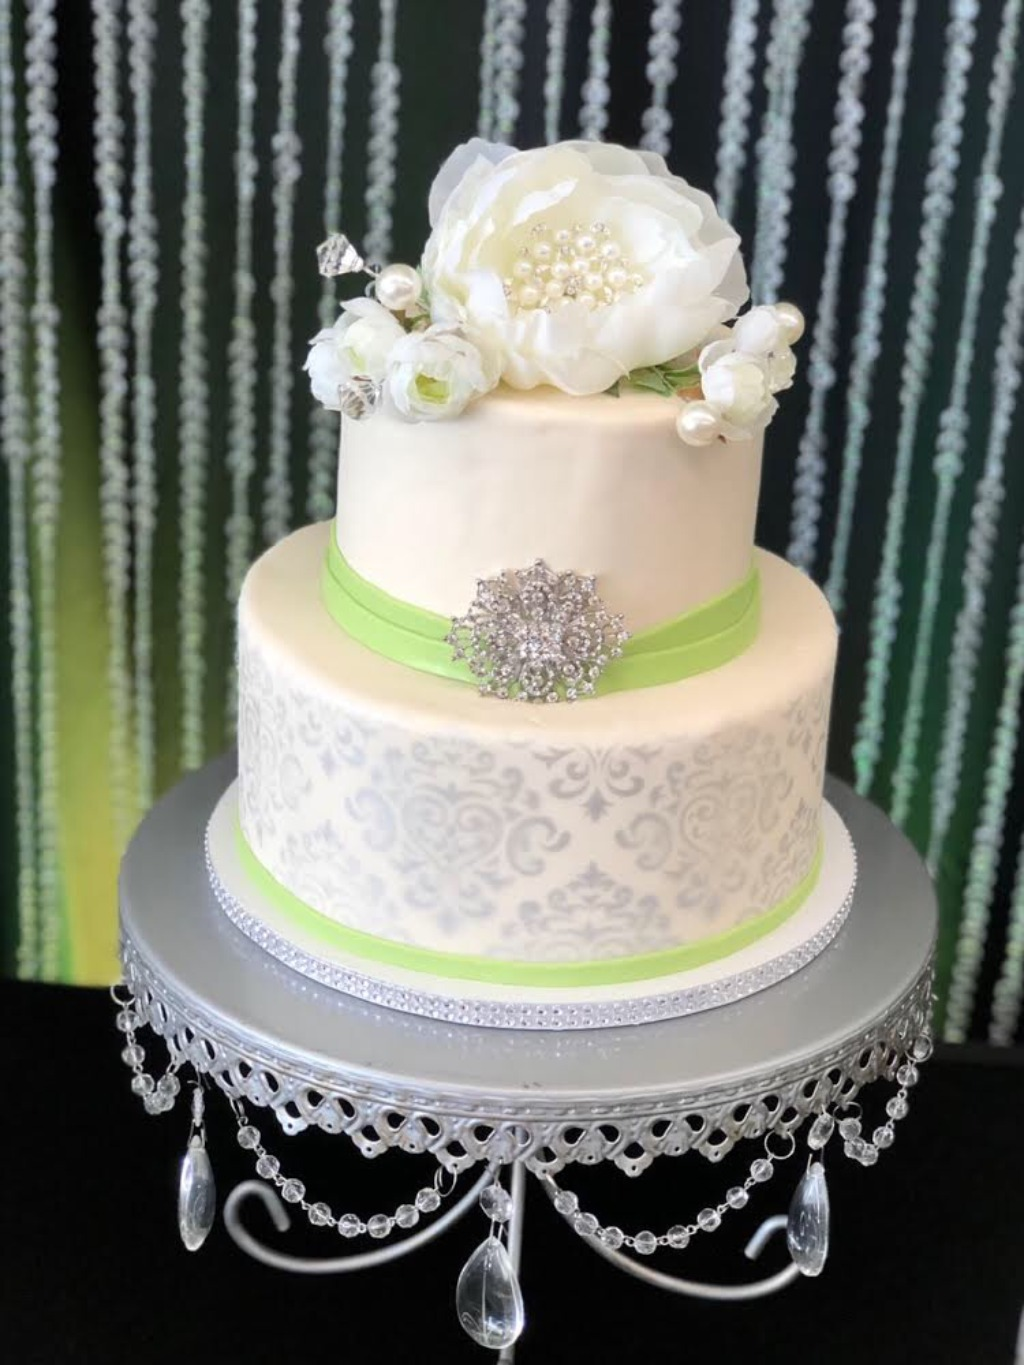 Ivory and Antique Silver Wedding Cake on Antique Silver Chandelier Cake Stand created by Opulent Treasures